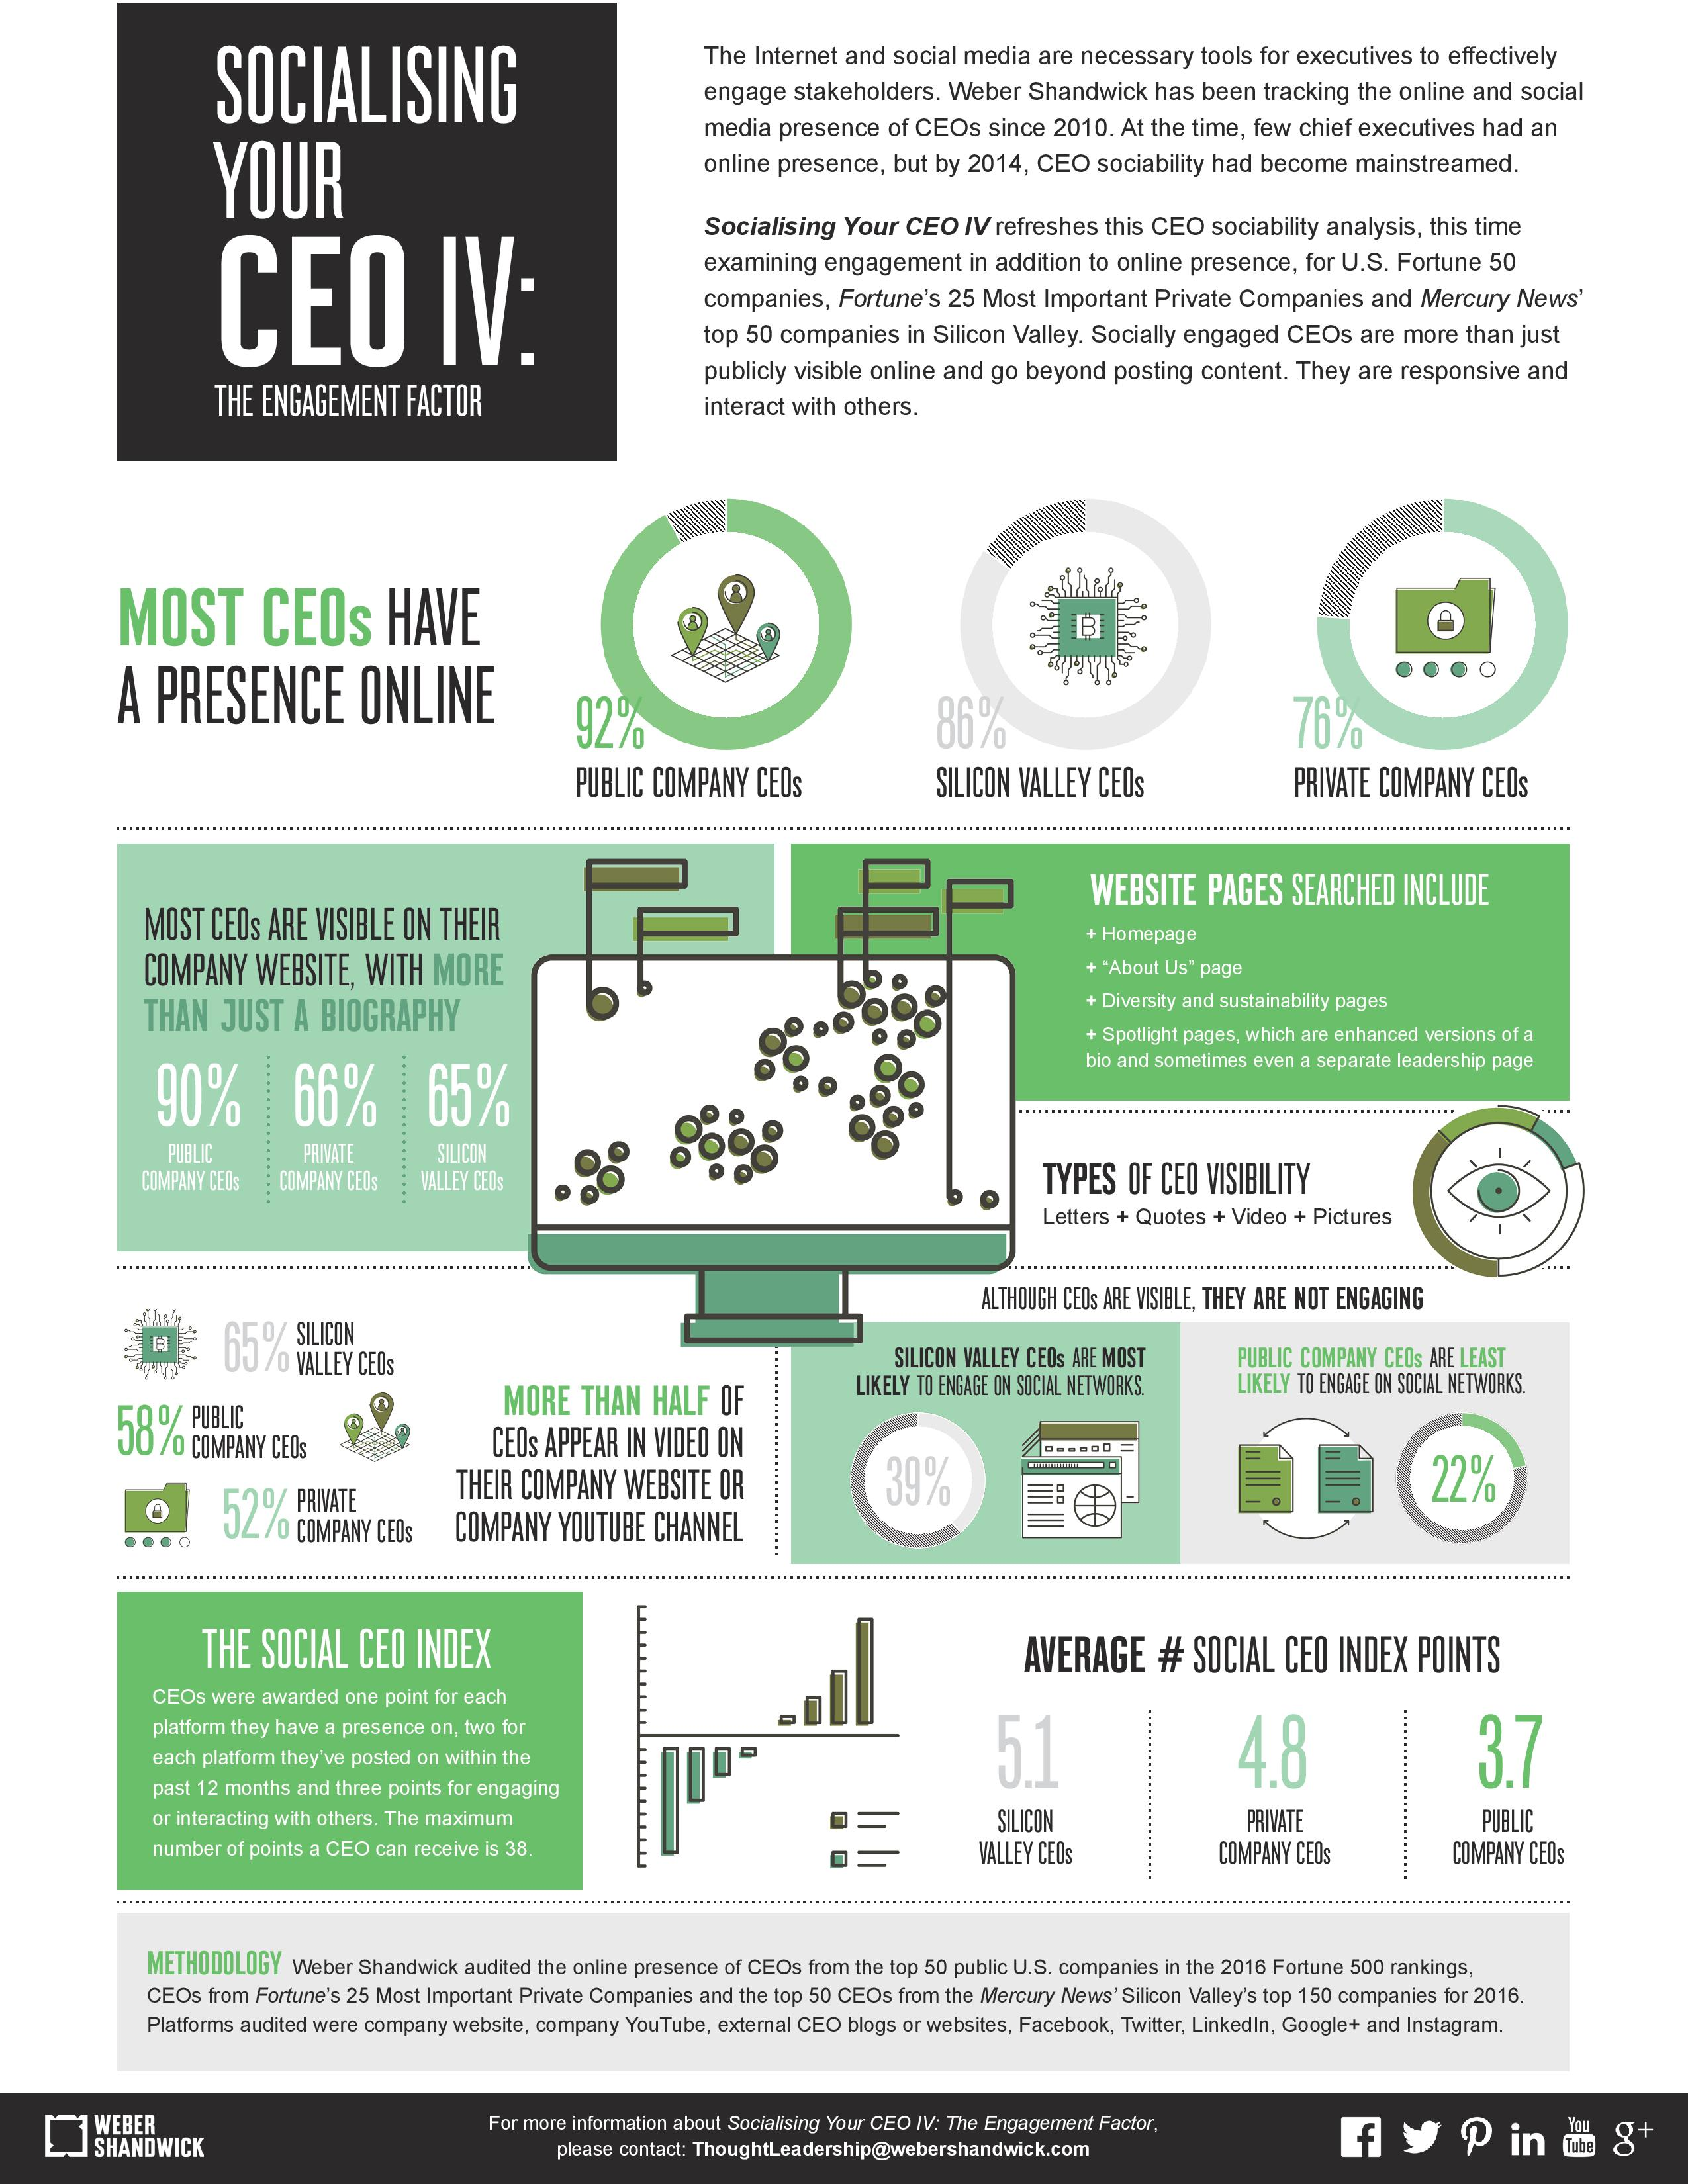 SocializingYourCEO-Infographic FINAL-page-001